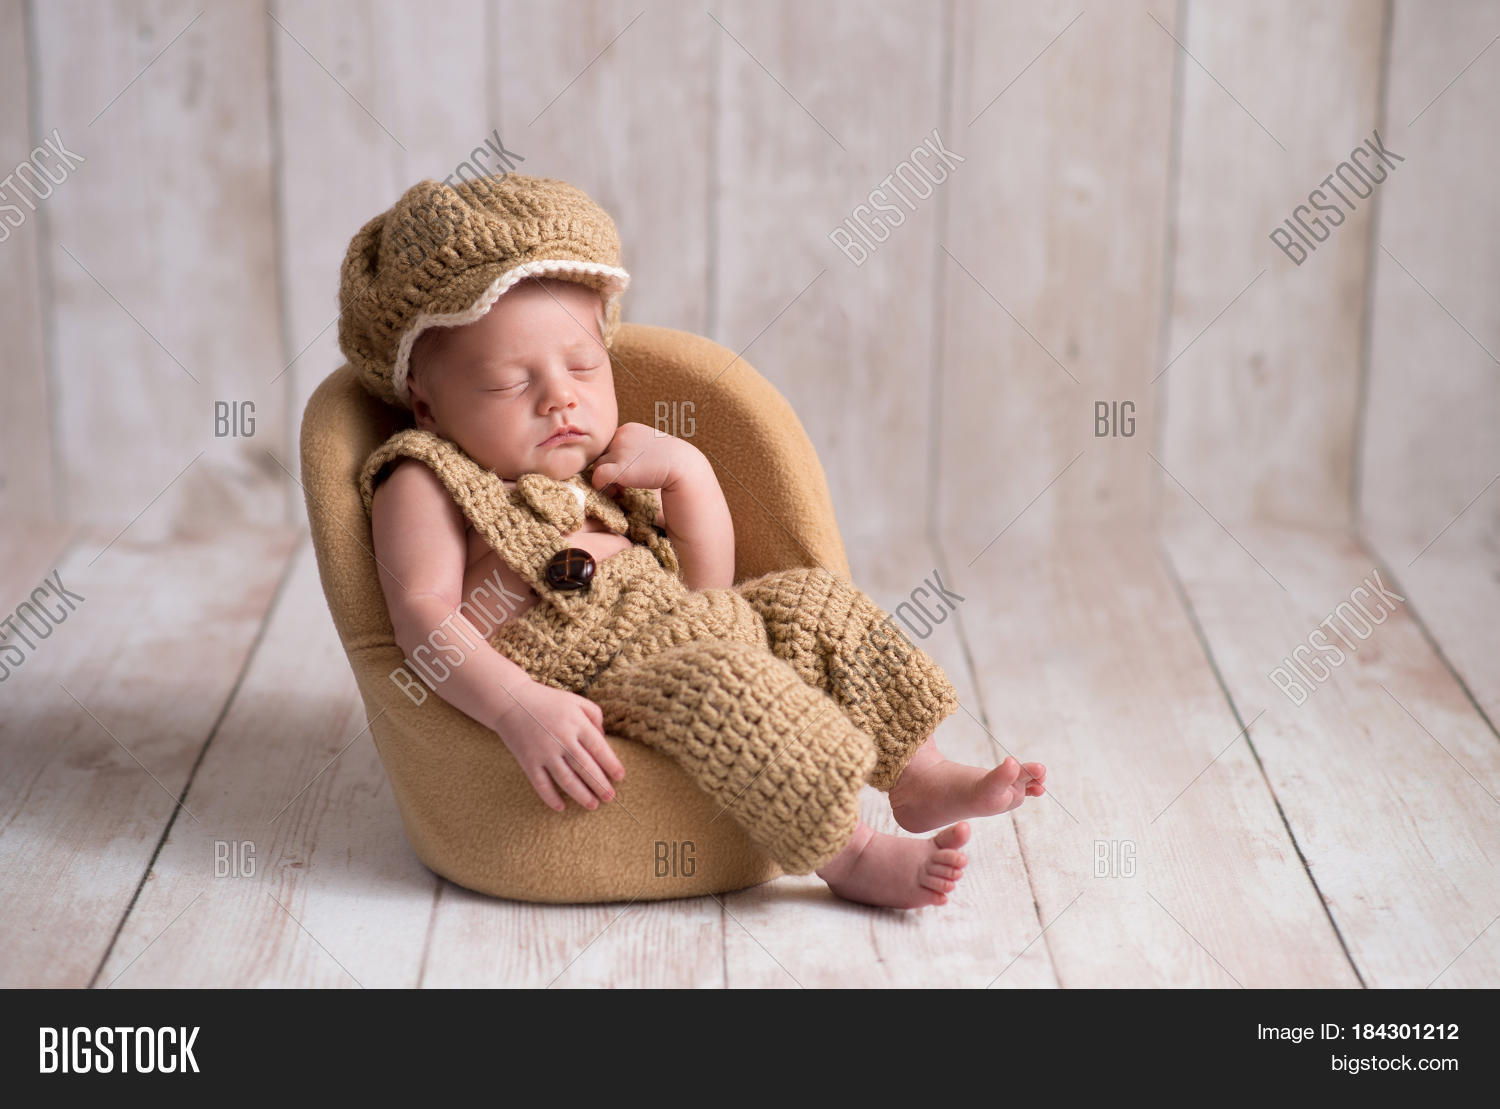 baby chair 1 year old lifts for stairs covered by medicare nine day newborn boy image and photo bigstock